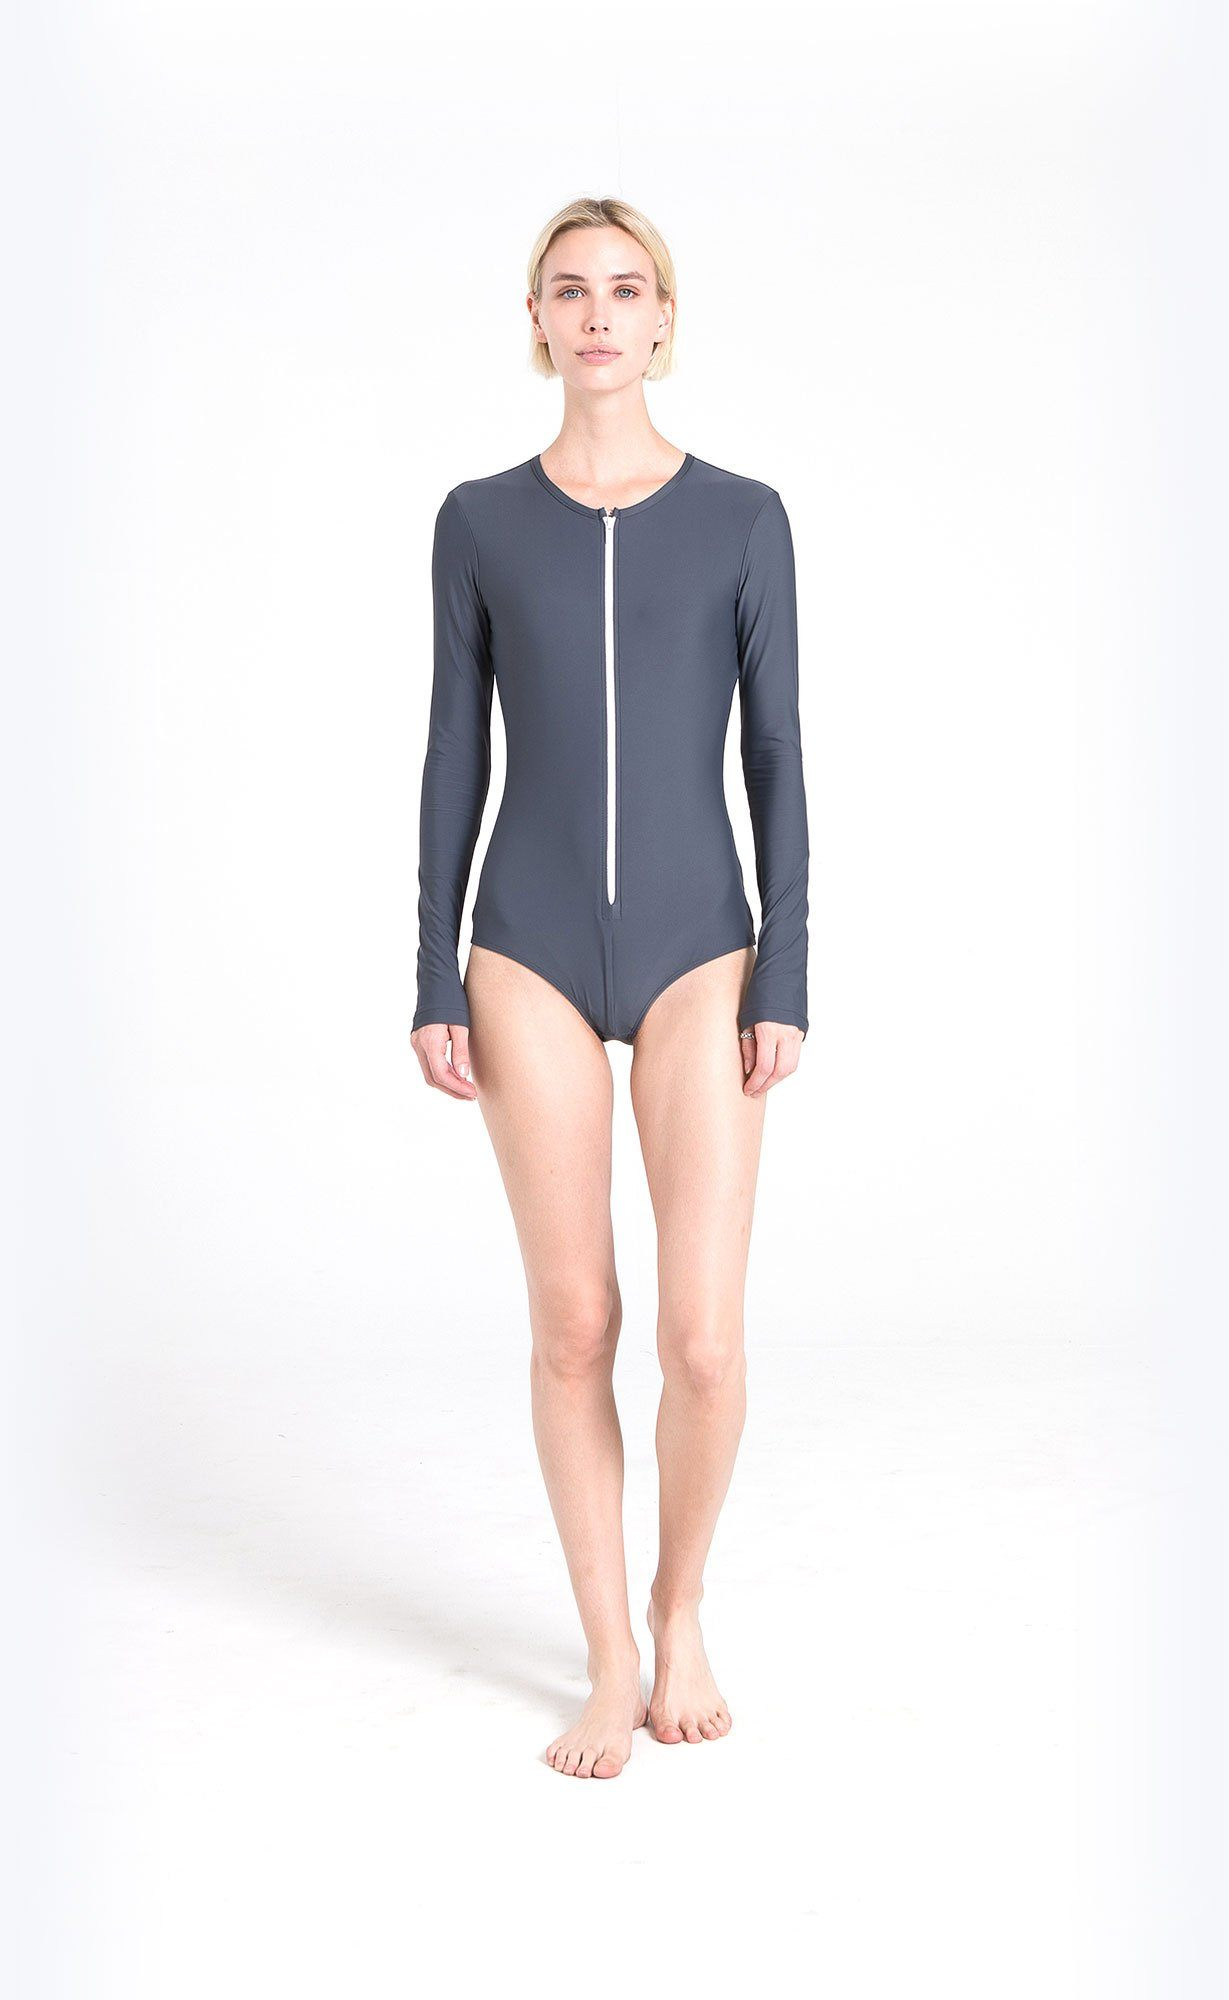 Long-Sleeved Front Zip Swimsuit - Grey